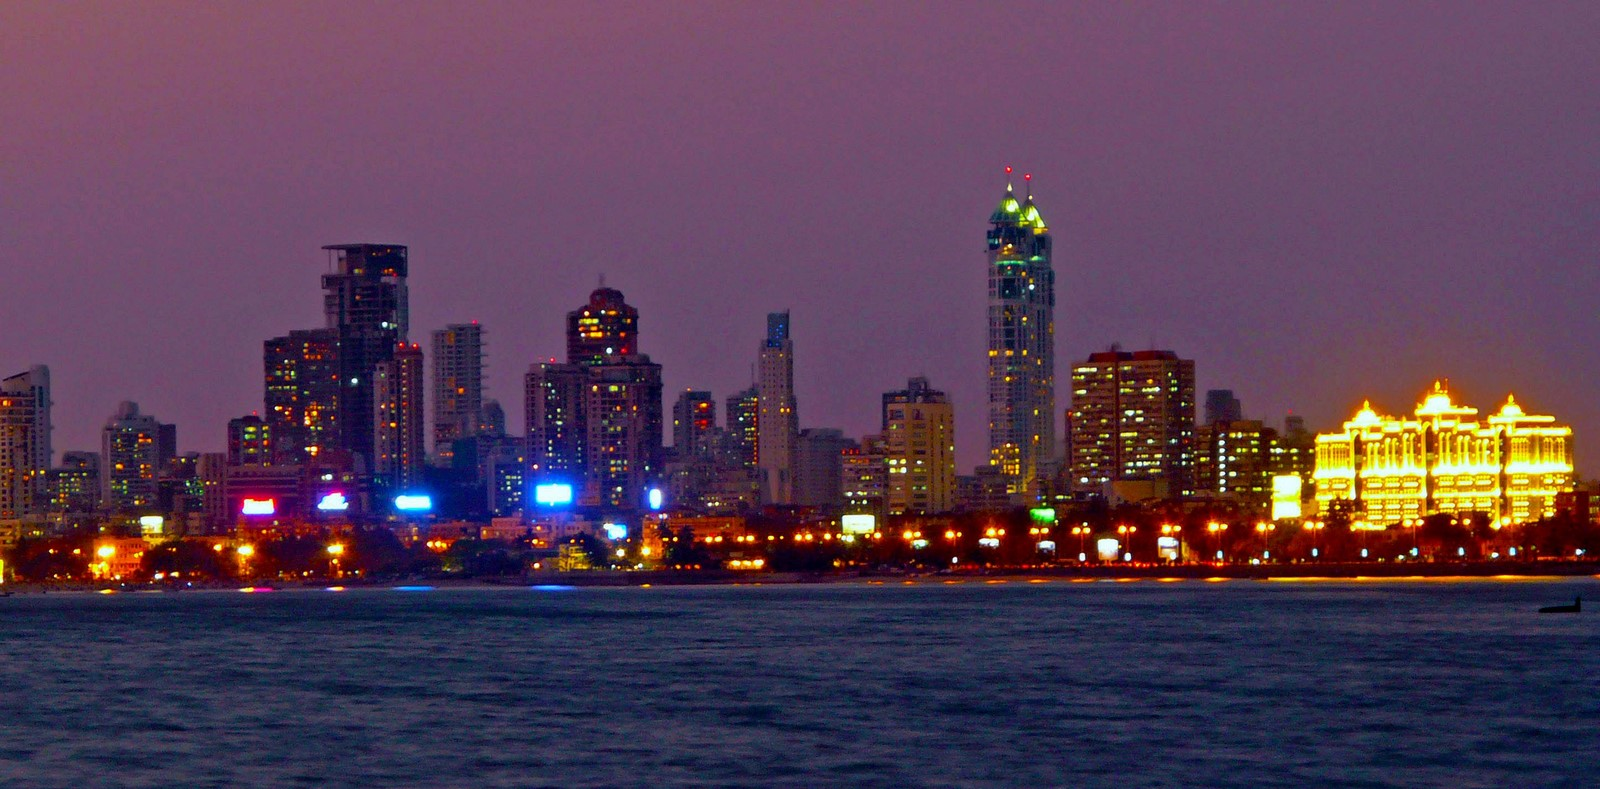 Contrast in the cityscape of Mumbai - Sheet8